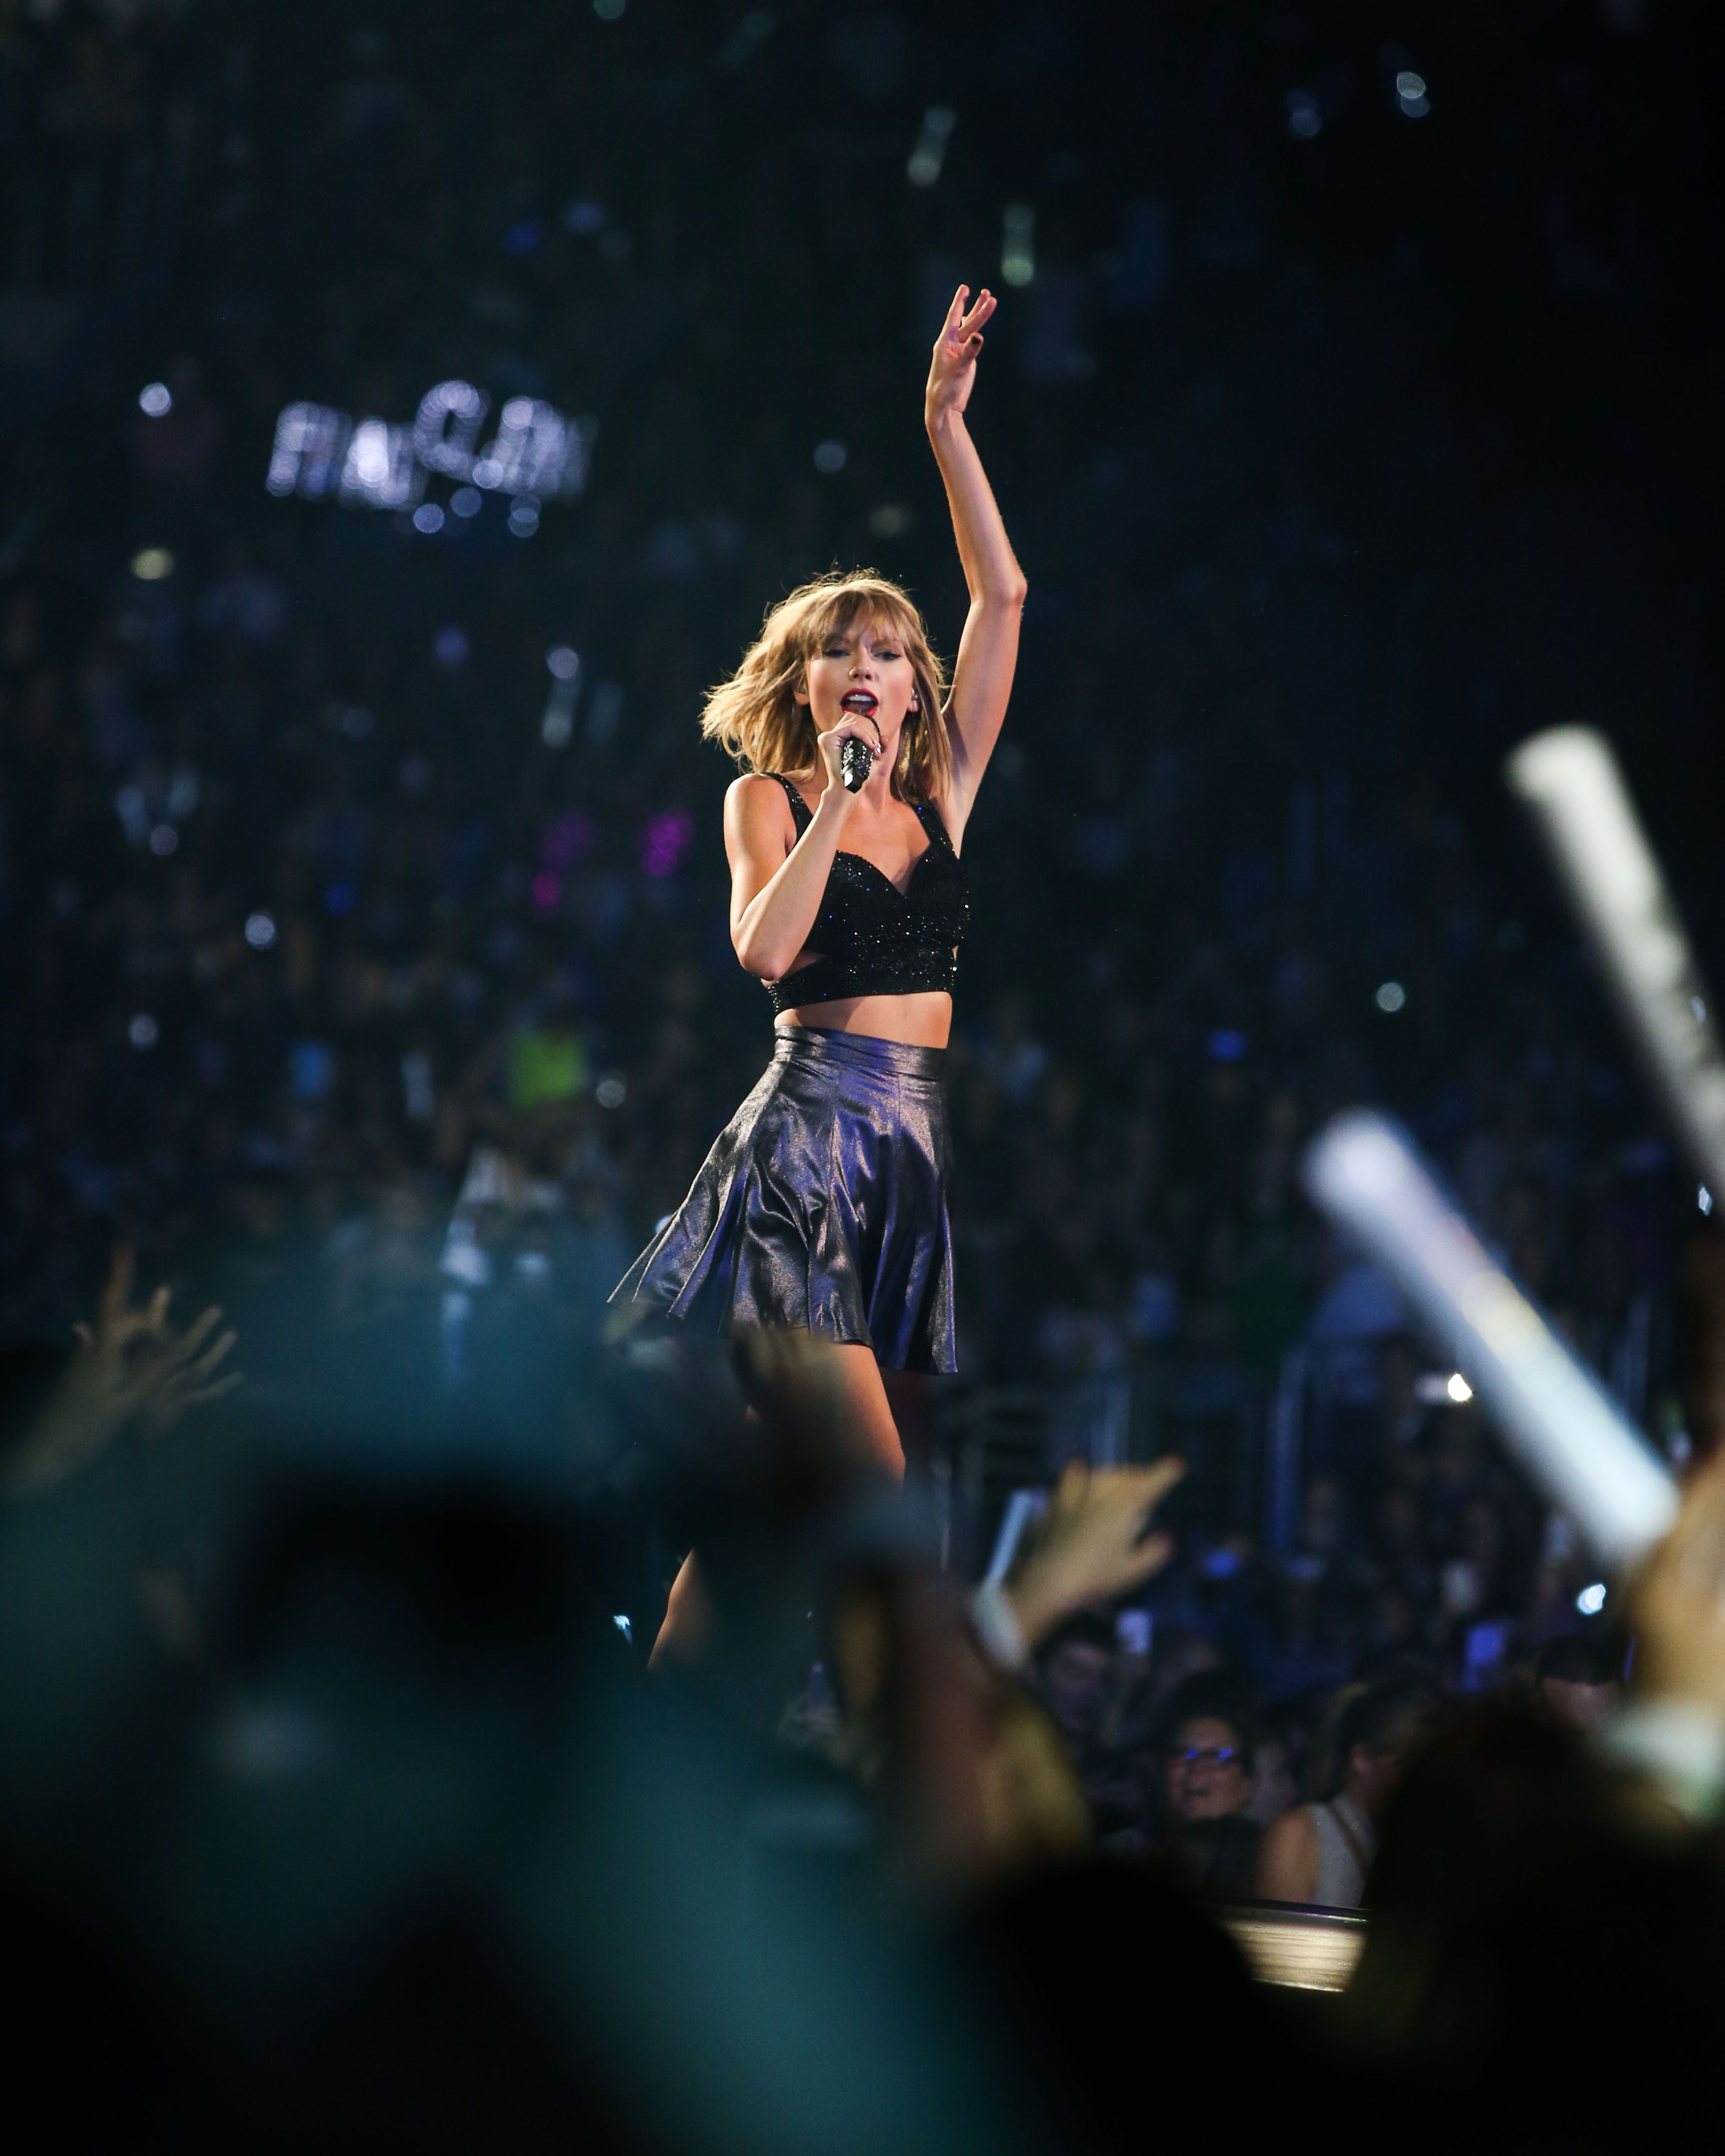 Taylor performing New Romantics during the 1989 World Tour in Los Angeles night one 8.21.15